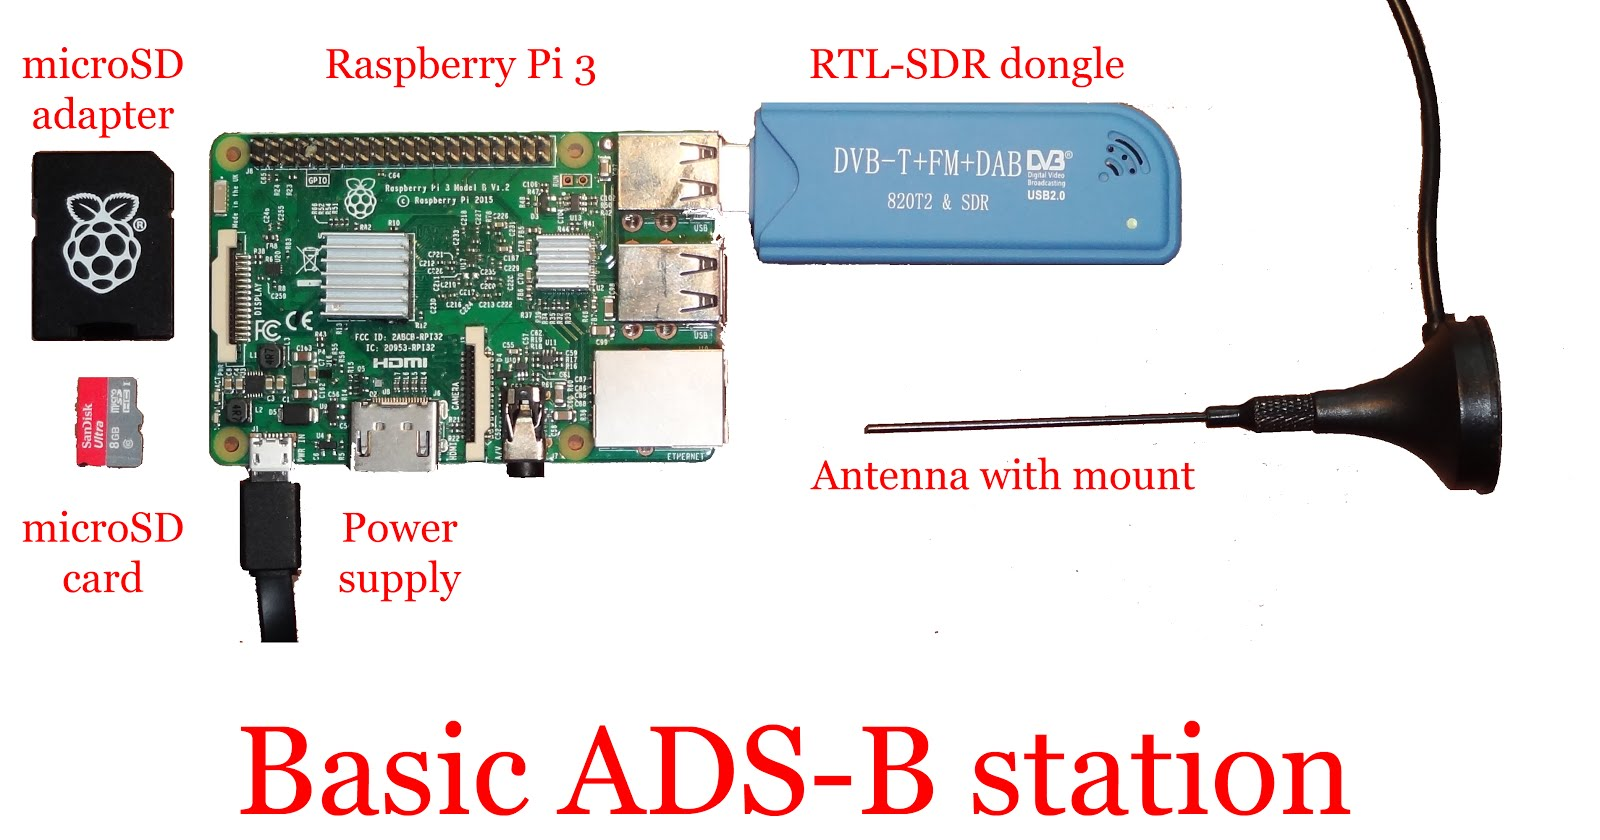 Cheapest ($70), bare minimum ADS-B station setup needs and looks like: